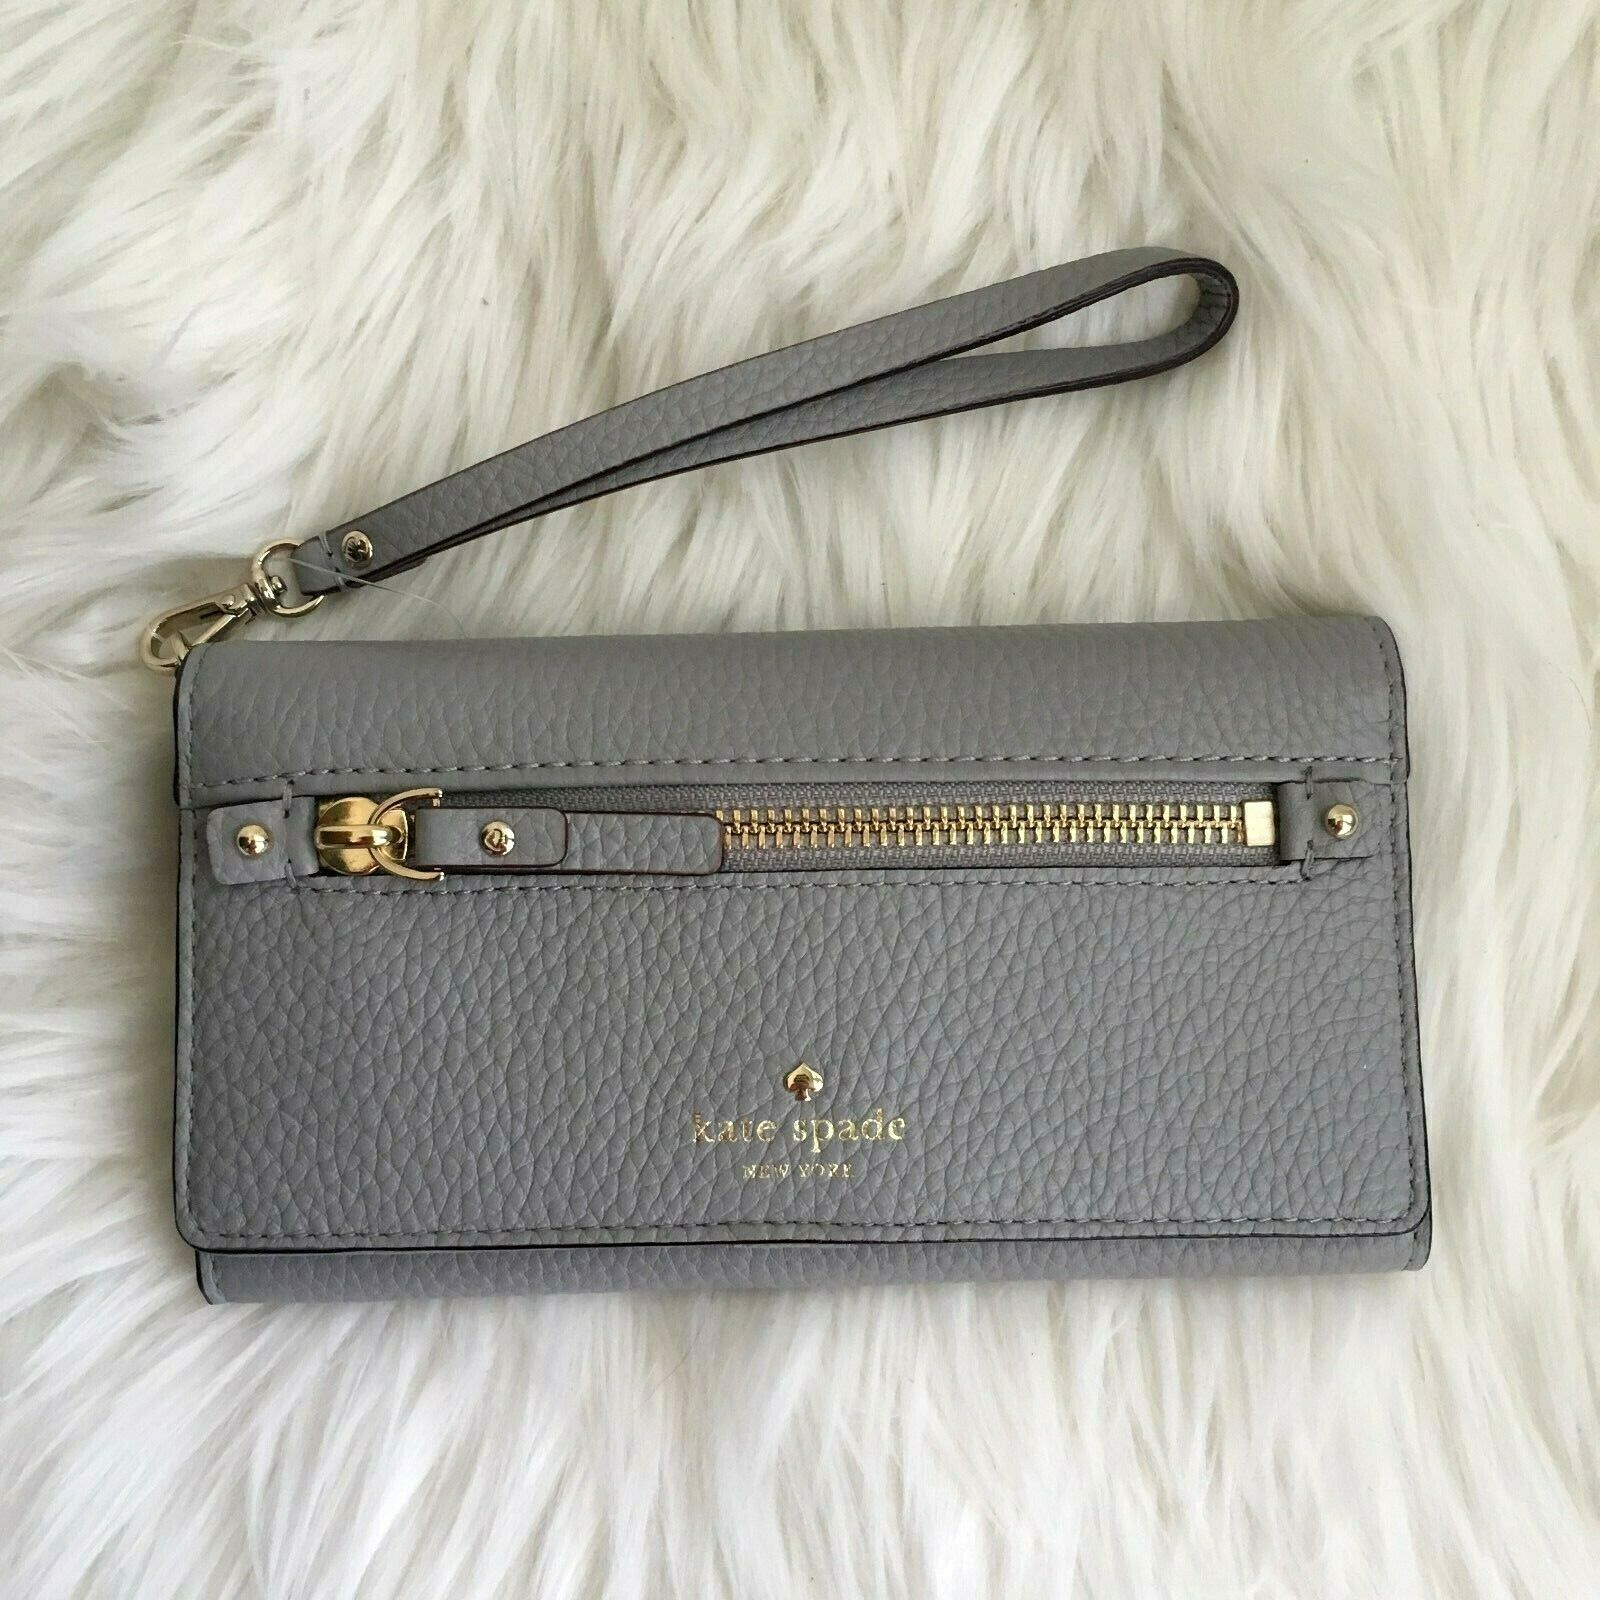 kate spade wallet grey leather cobble hill 7.25 x 4 wristlet NEW